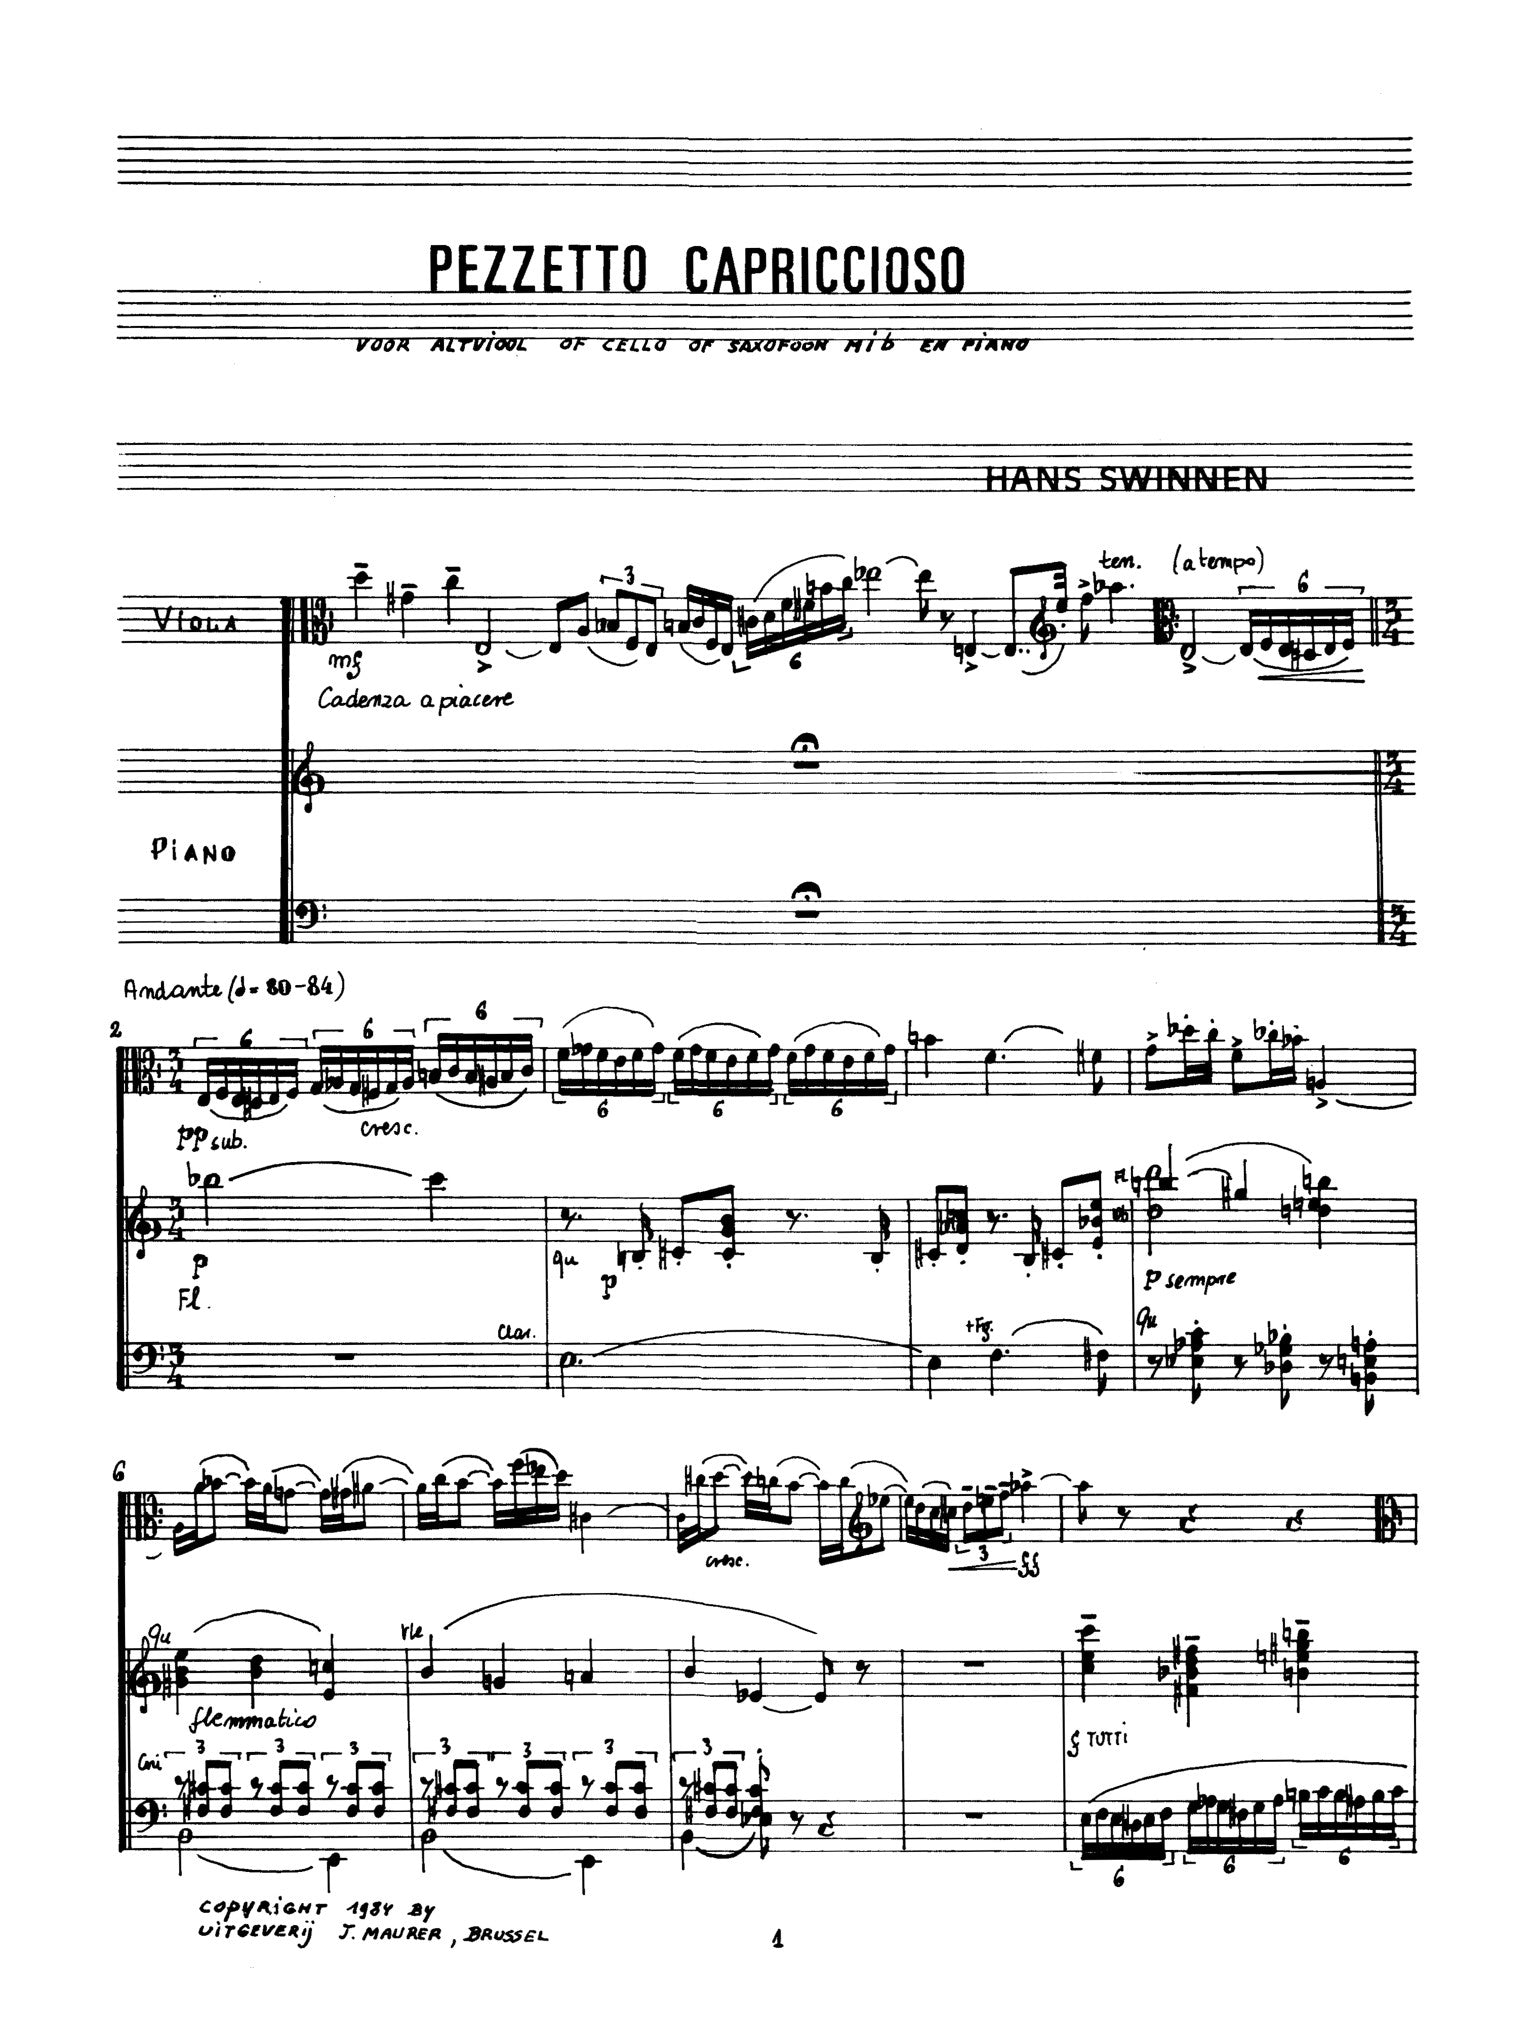 Swinnen Pezzetto Capriccioso For Viola And Piano Vap1250ejm United Music And Media Publishers Vocalise, and bach's air on the g string. alry publications